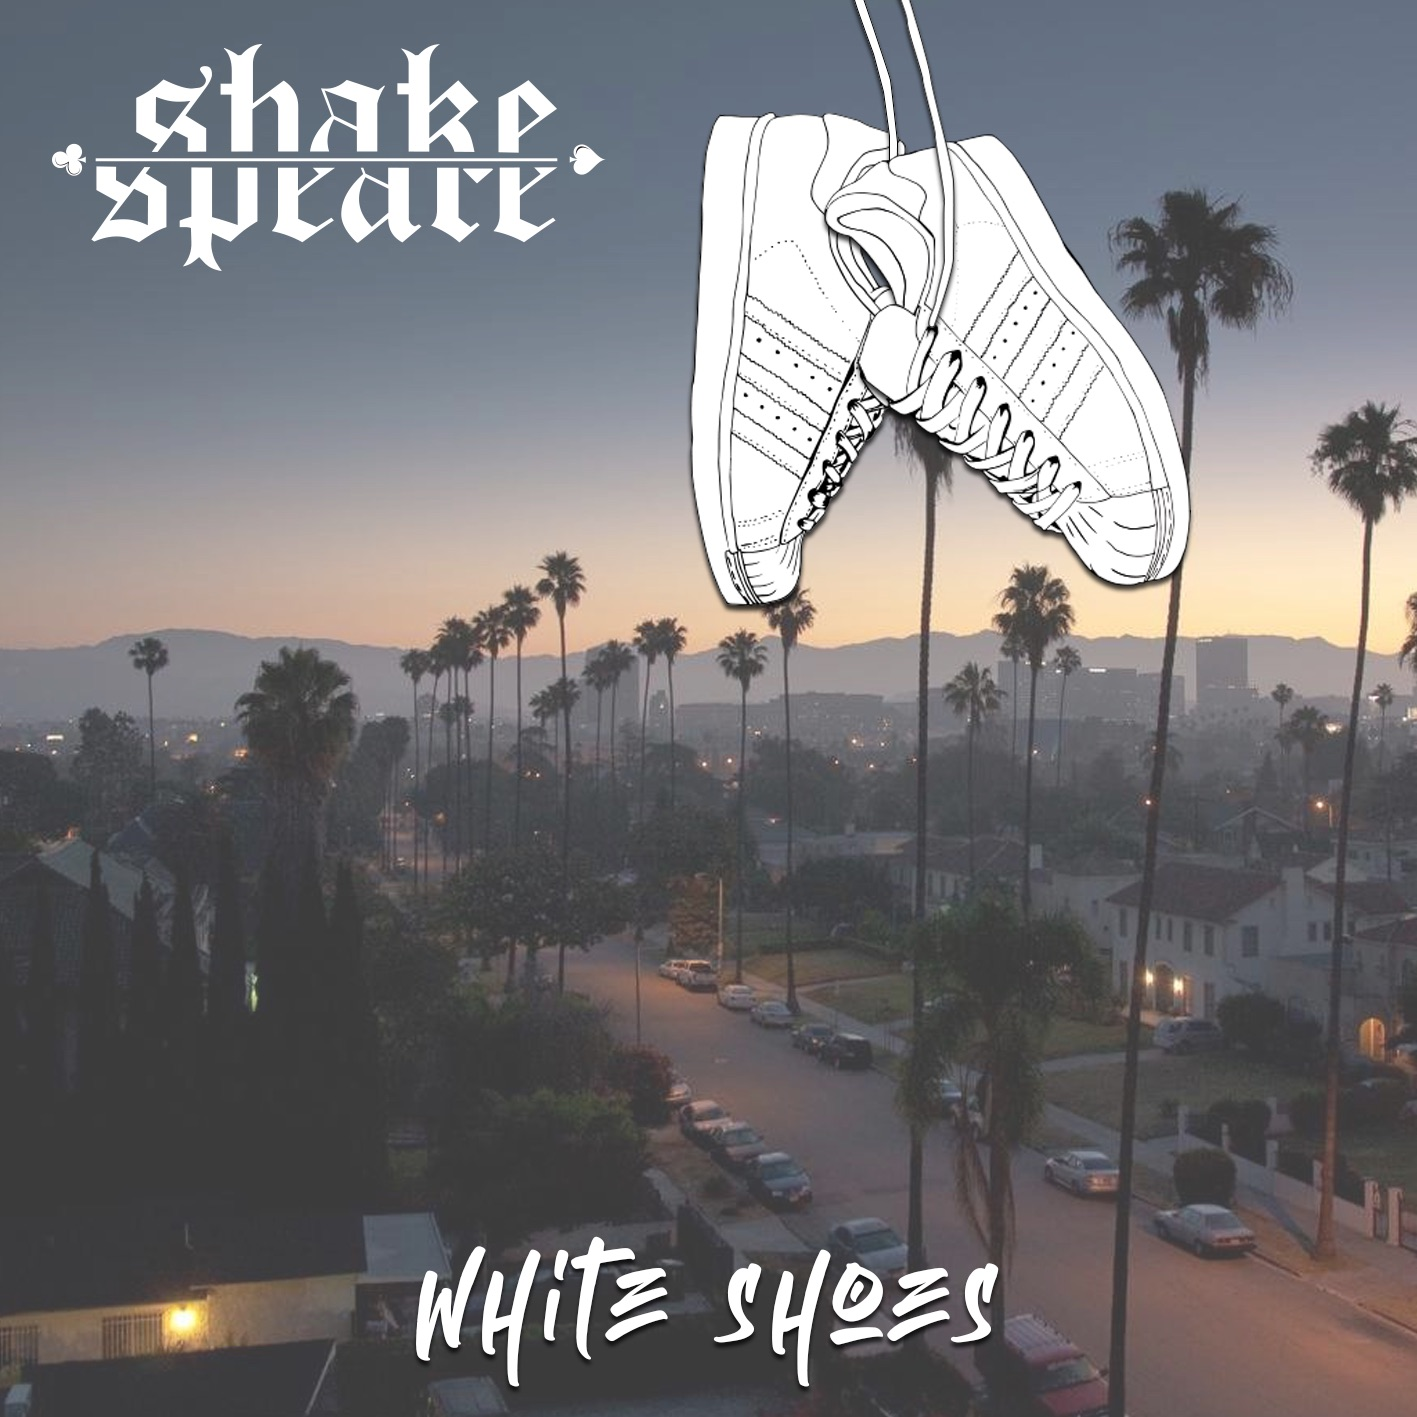 Single Release Date - May 8th, 2019, Shakespeare will release the first single, 'White Shoes', from their debut album (TBA).